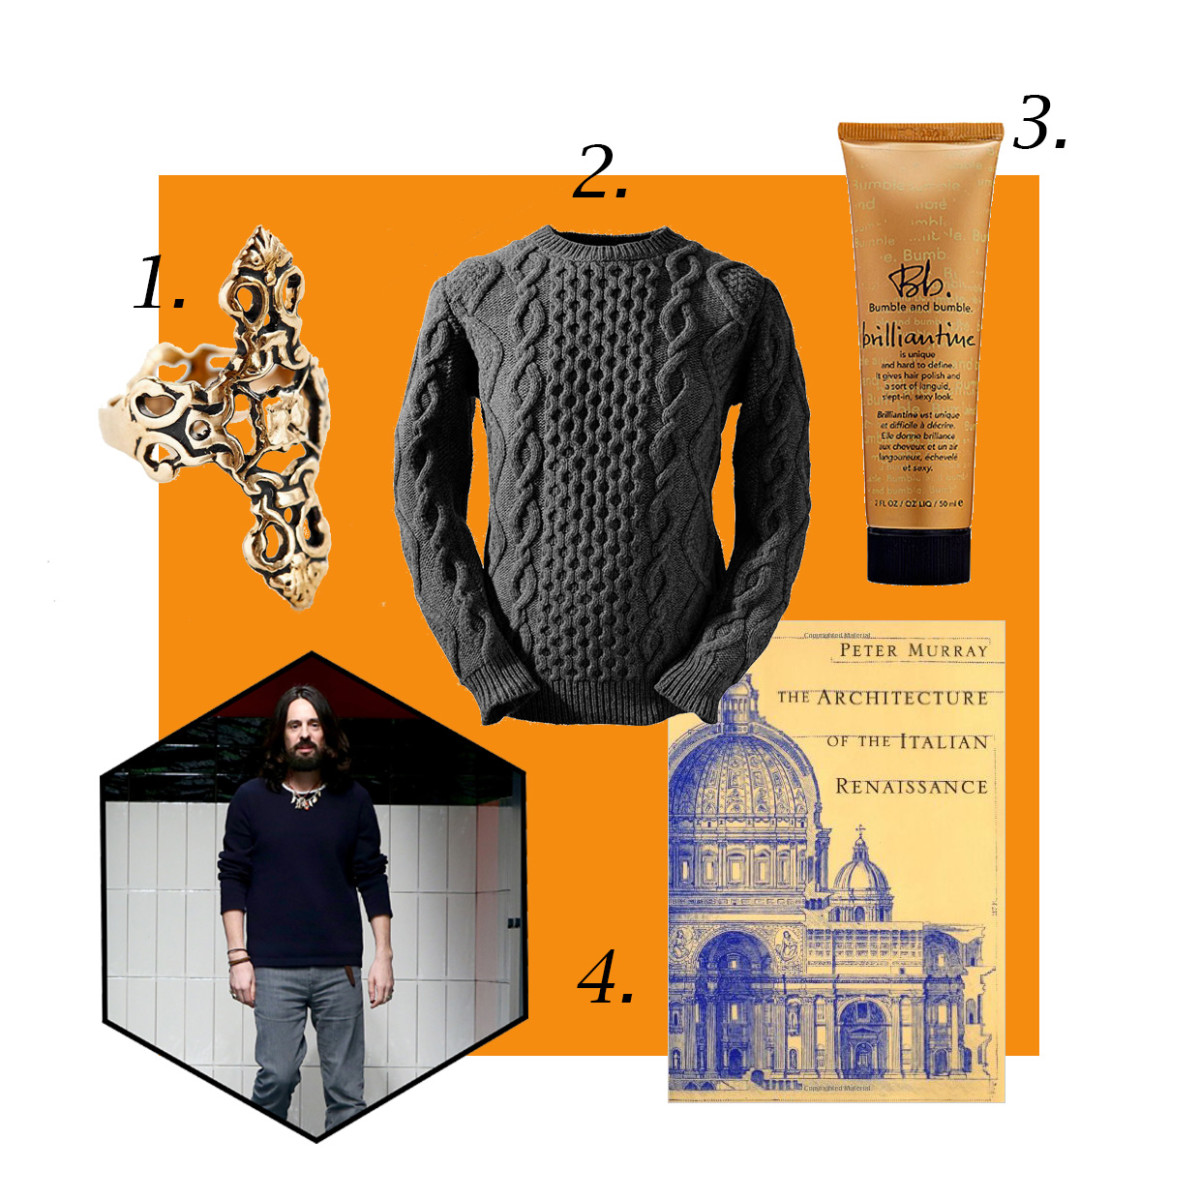 "1. Souvenir Jewelry Obelisk ring, $40, available at Urban Outfitters; 2. Aran Cabled Sweater Fisherman sweater, $195.95, available at Aran Cabled Sweater; 3. Bumble and bumble brilliantine, $24, available at Sephora; 4. ""Architecture of the Italian Renaissance,"" $8.95, available at Amazon. Photo: Vittorio Zunino Celotto/Getty Images"